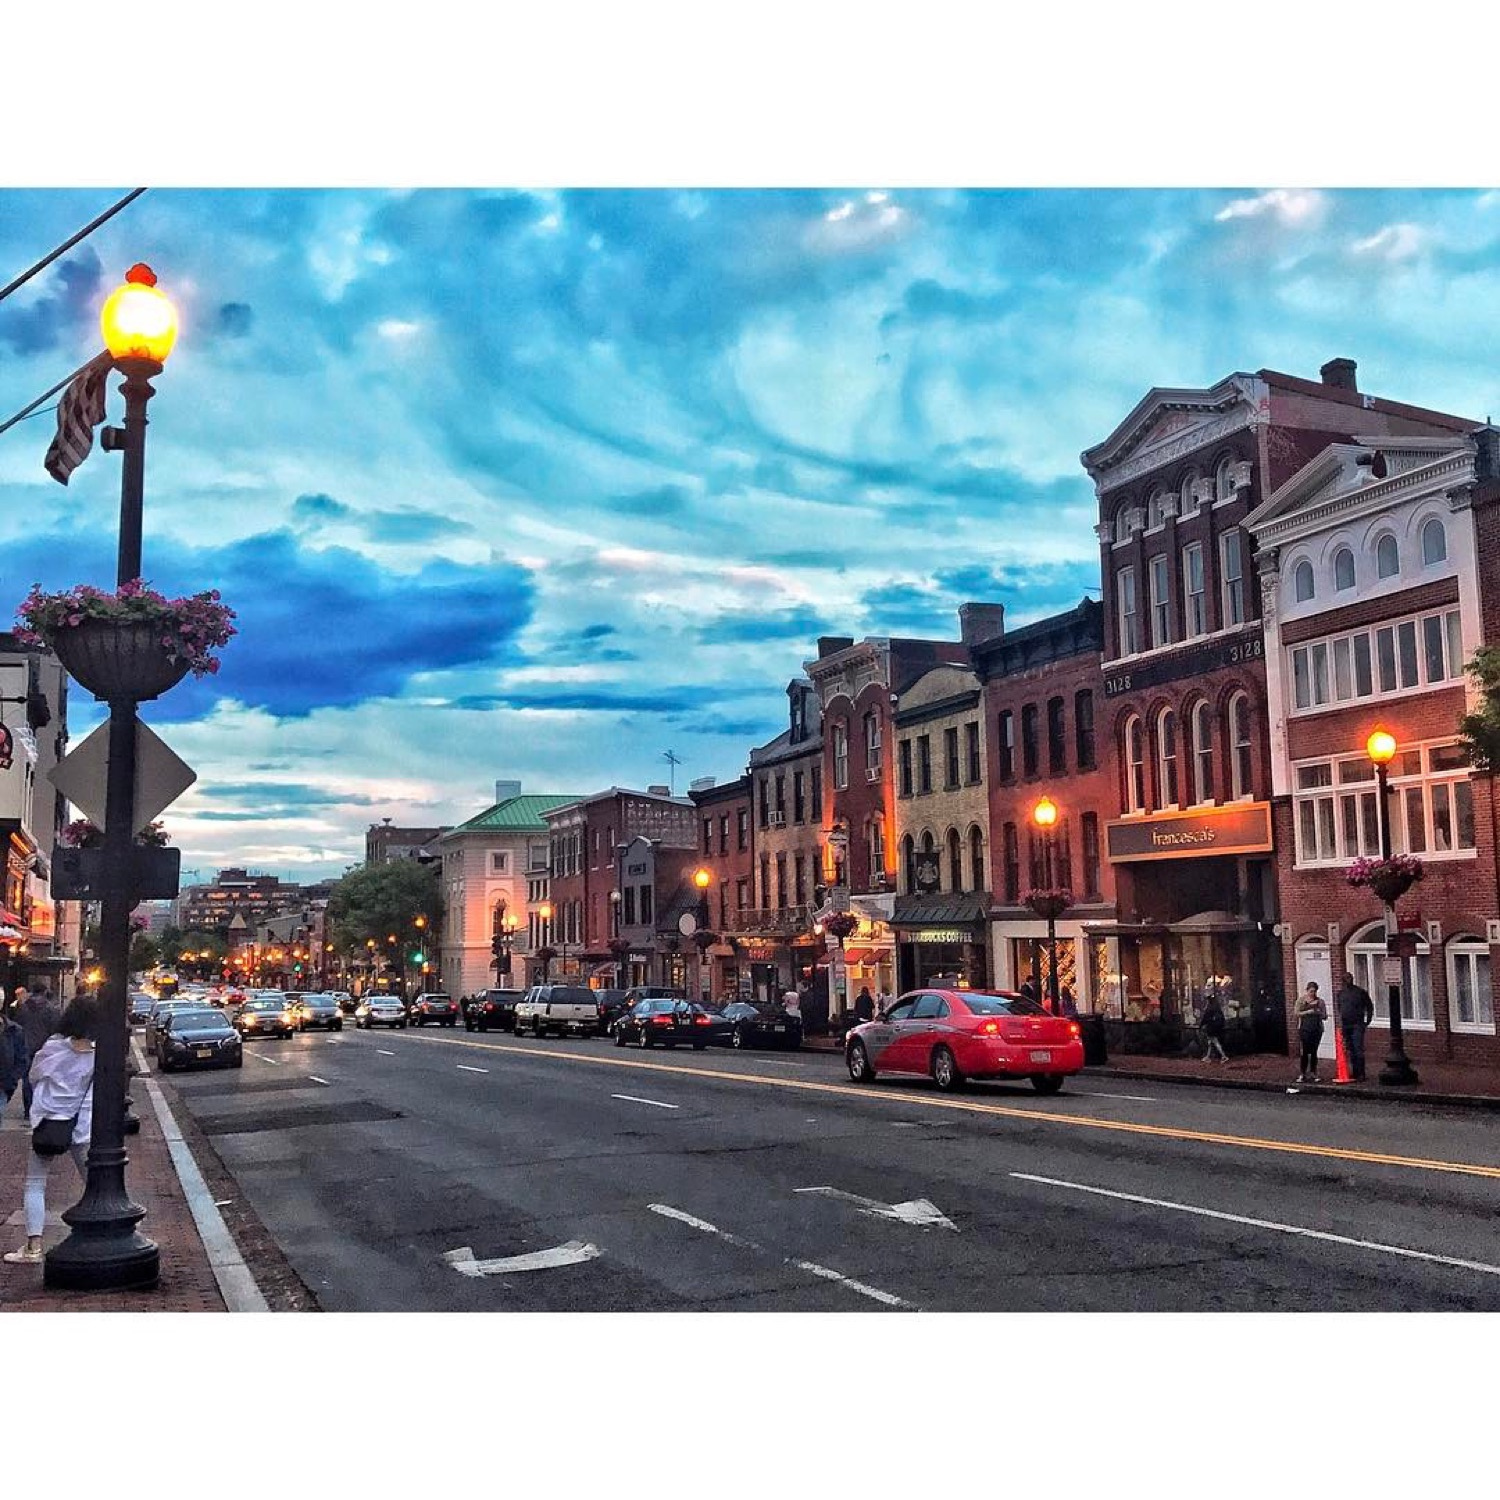 PLACE: Georgetown, Washington, DC / MILES FROM CINCY: 500 / ABOUT: But as long as we're on the subject, Georgetown is eye-catching in its own right. And t's home to the house JFK lived in while running for president (address: 2706 Olive Street). Not bad, eh? / Image courtesy of Instagram user @sarahdhetrick // Published: 5.14.17